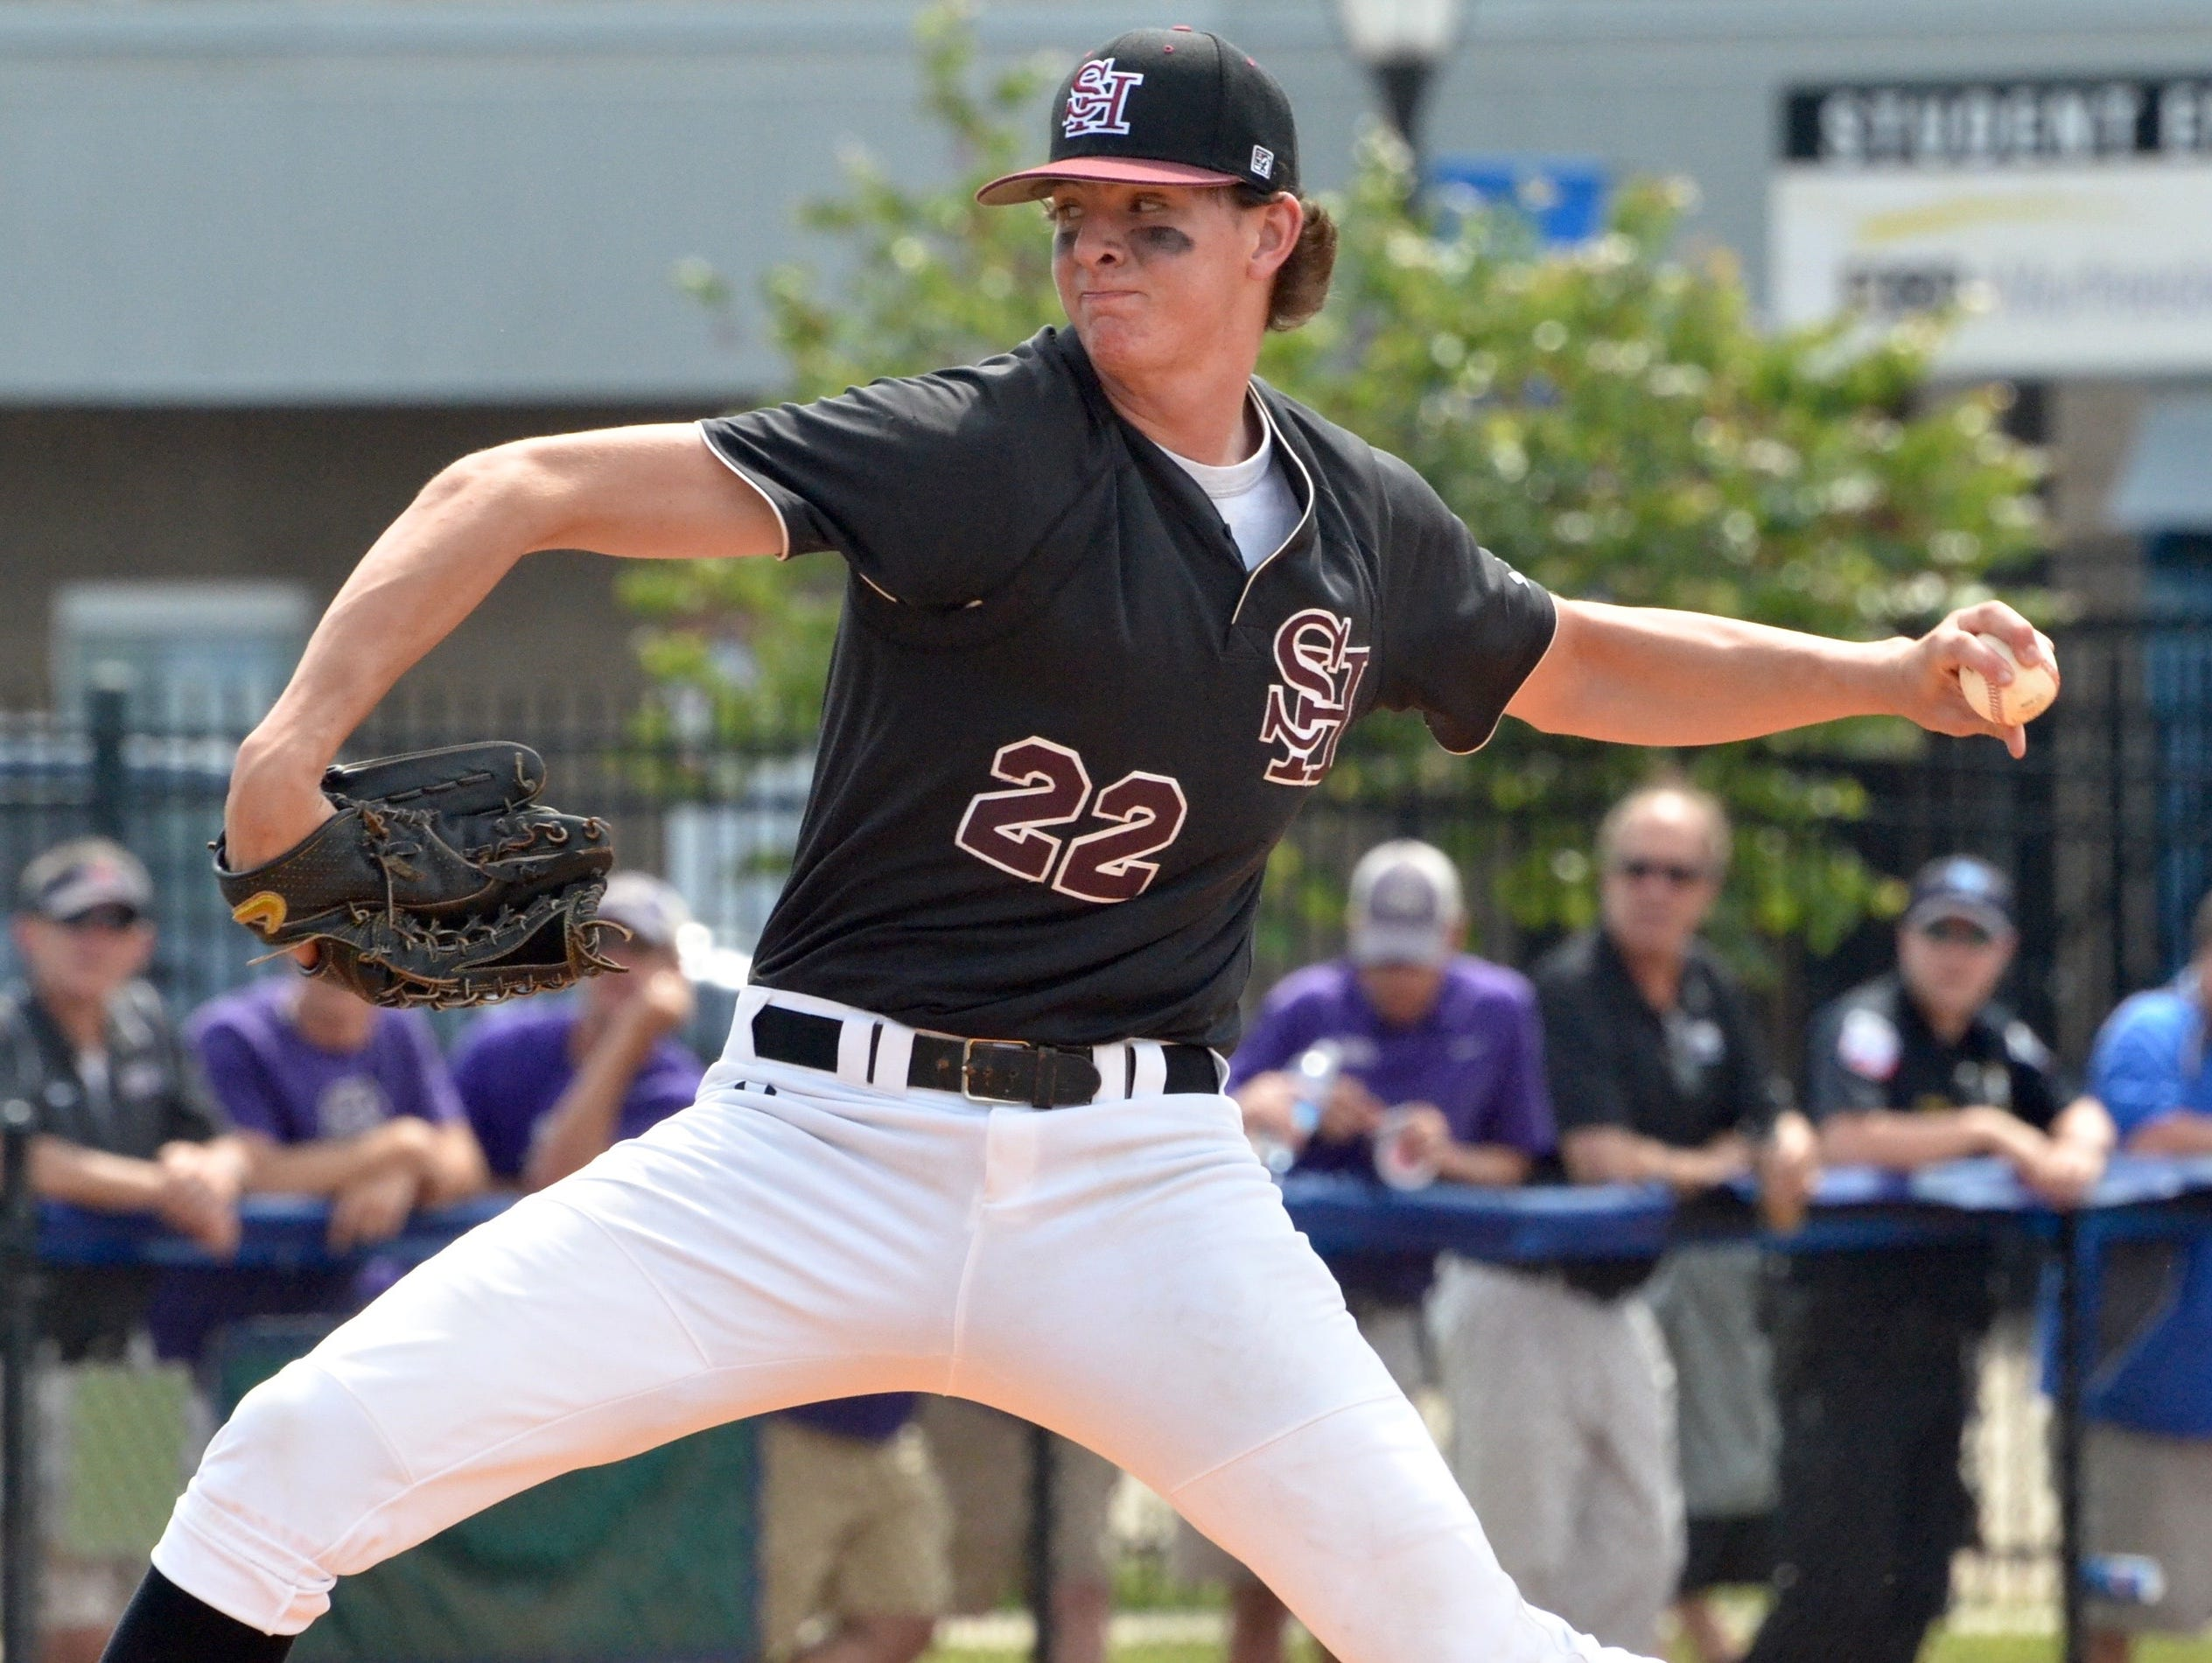 Spring Hill senior and Vanderbilt signee Zach King delivers a fourth-inning pitch during Friday's TSSAA Class AA state baseball championship game at MTSU's Reese Smith Jr. Field.